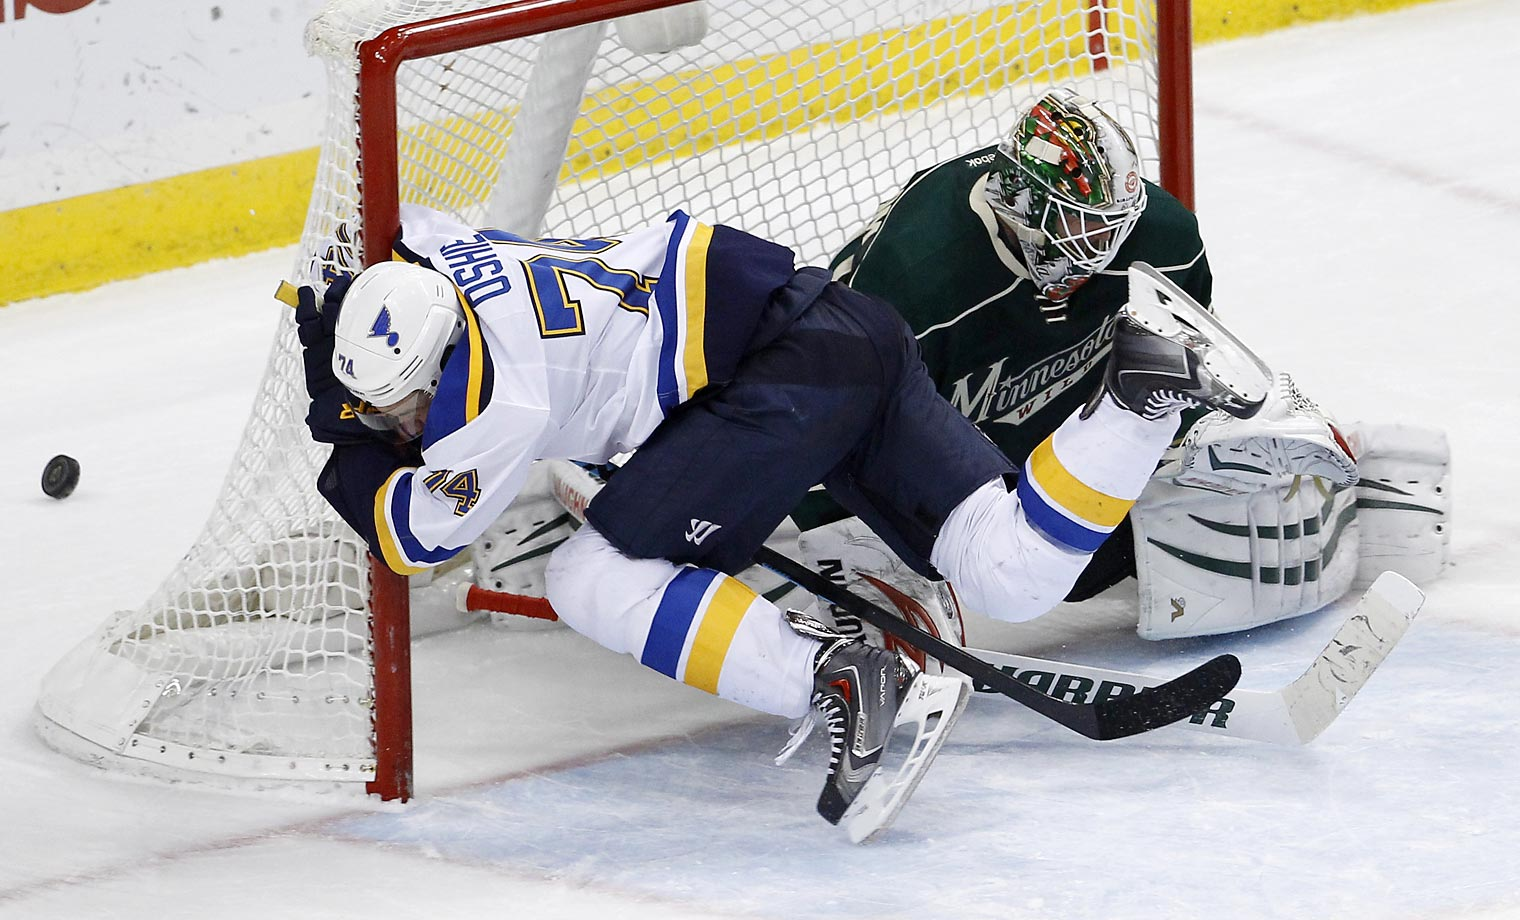 St. Louis Blues right wing T.J. Oshie hits the post after colliding with Minnesota Wild goalie Niklas Backstrom during overtime. The Blues won 3-2 in a shootout.